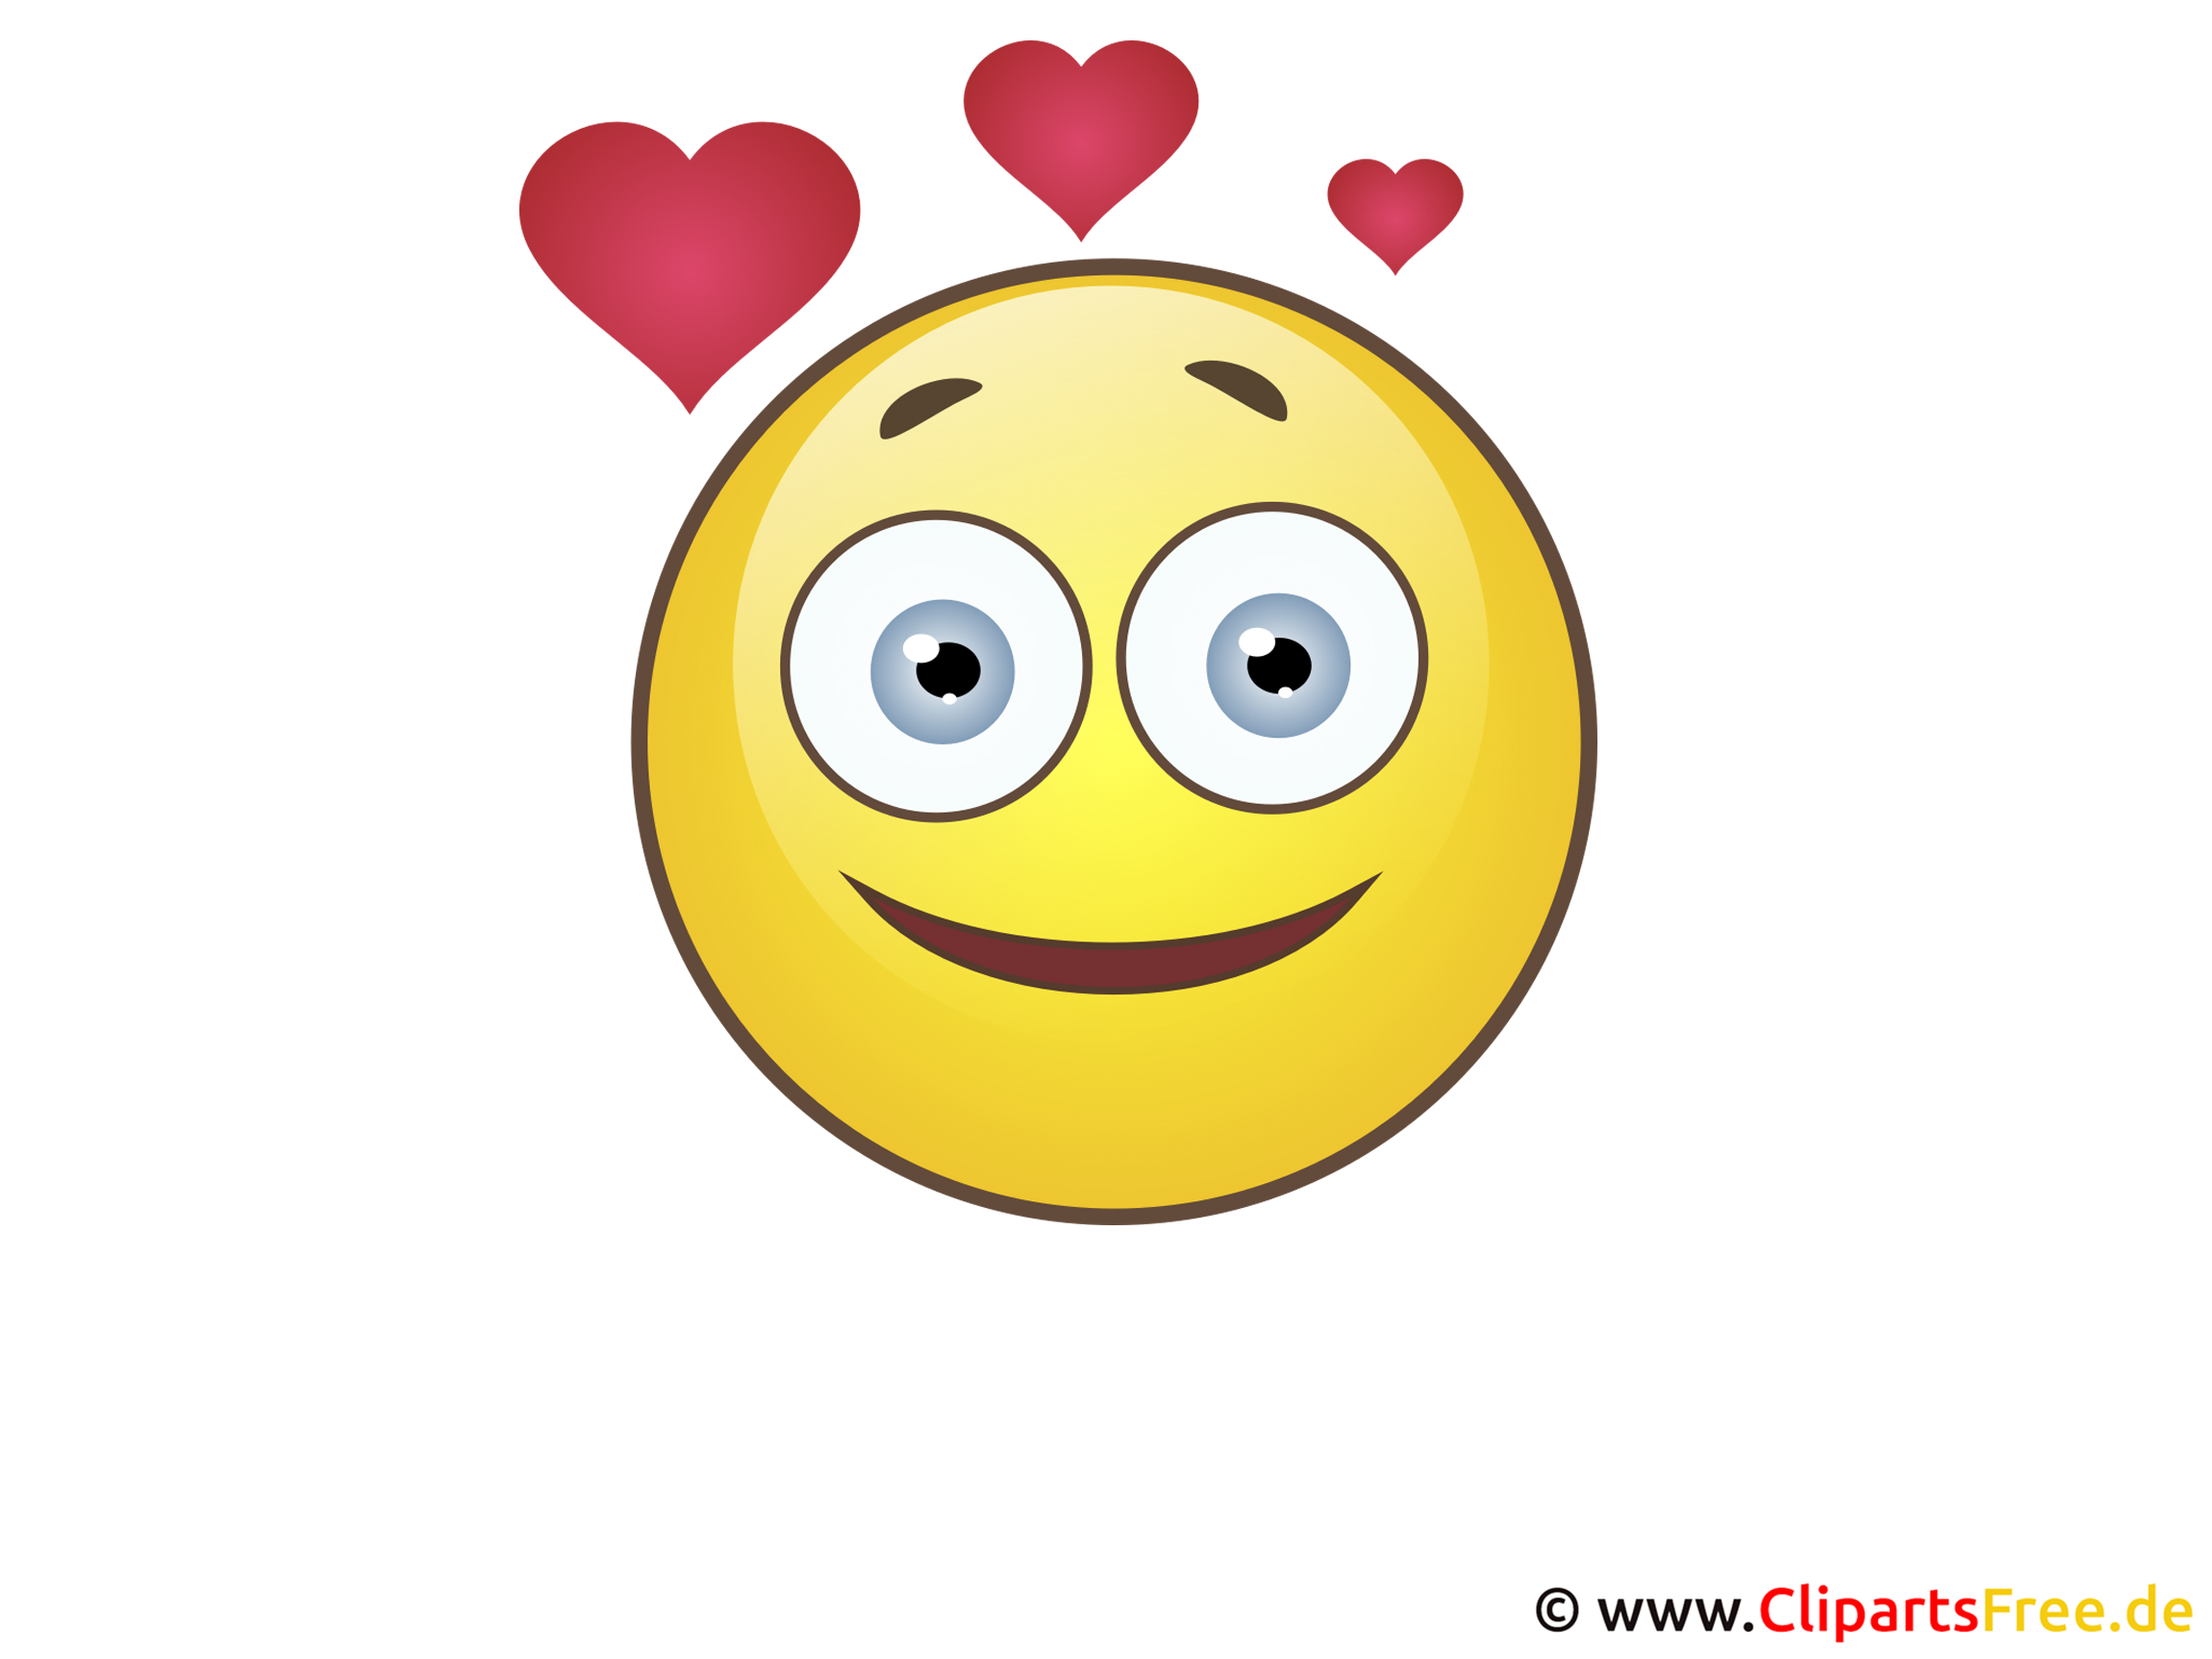 Smiley Liebe